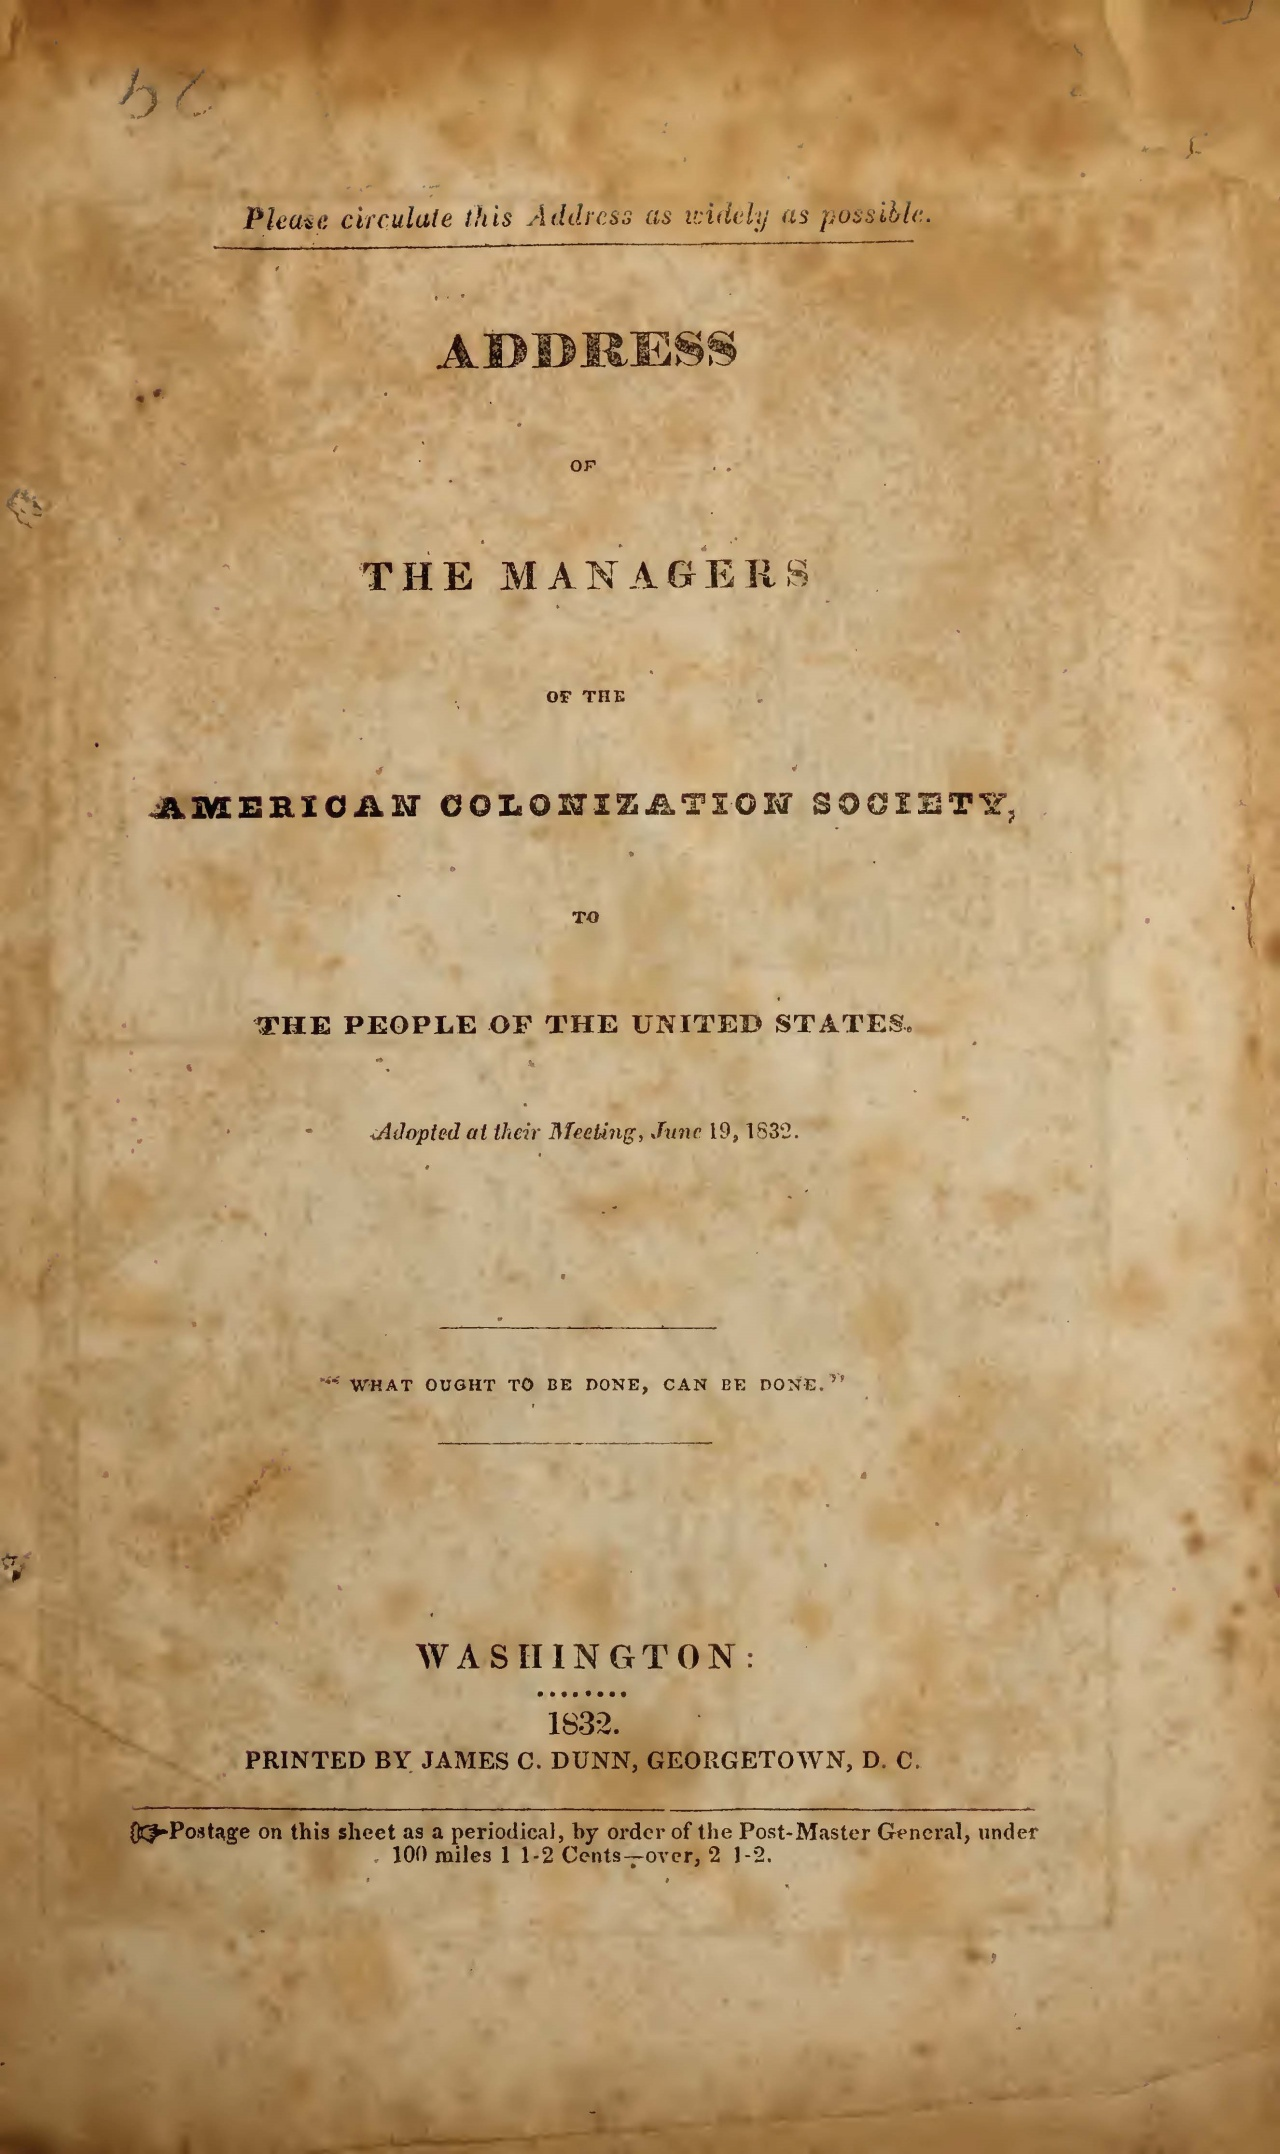 Gurley, Ralph Randolph, 1832 Address of the Managers of the ACS Title Page.jpg